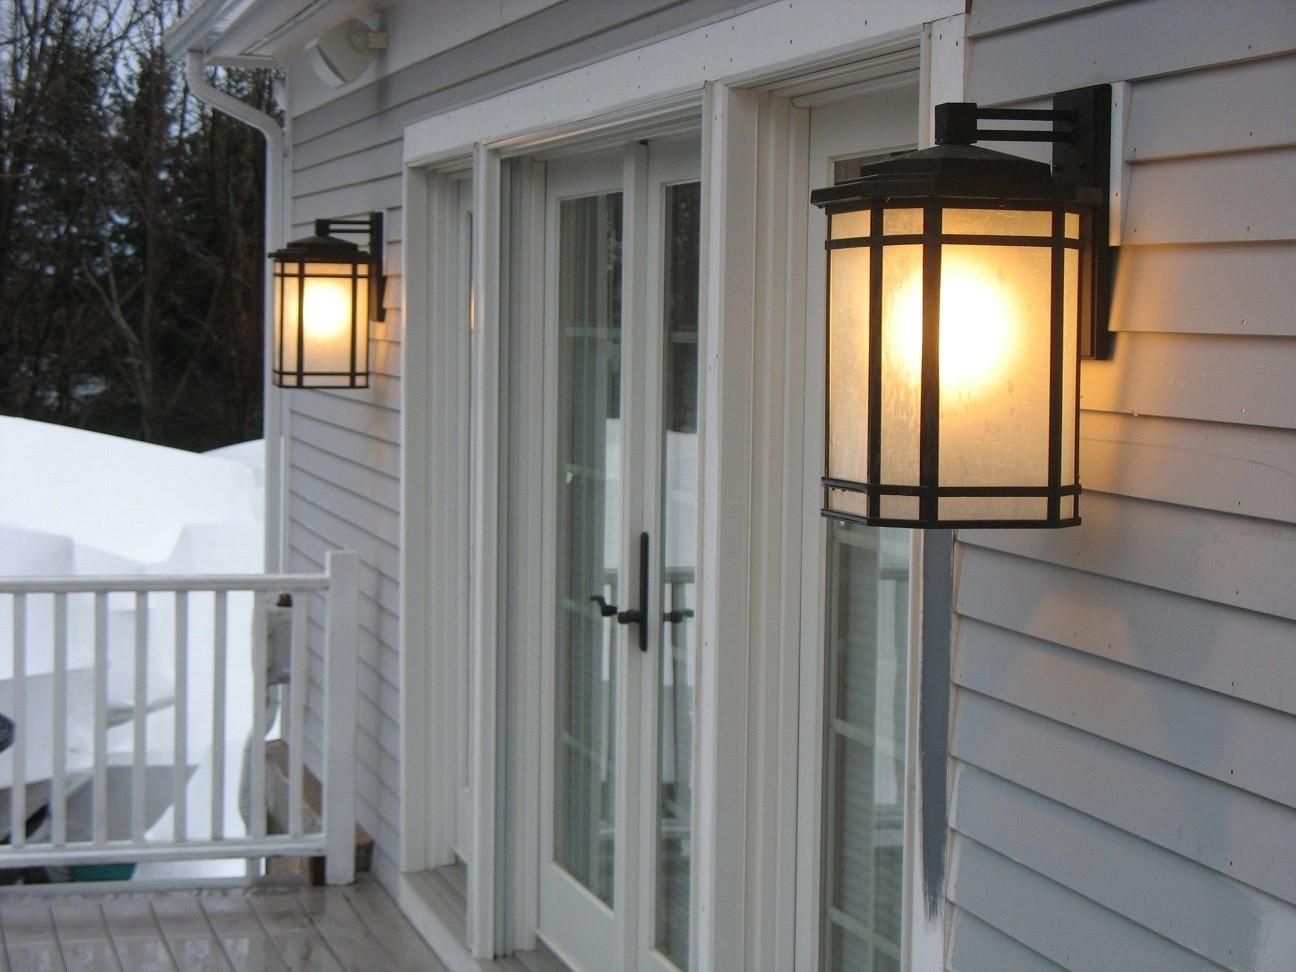 Wonderful Large Outdoor Light Fixtures Extra Large Exterior Wall Inside Extra Large Outdoor Wall Lighting (View 13 of 15)